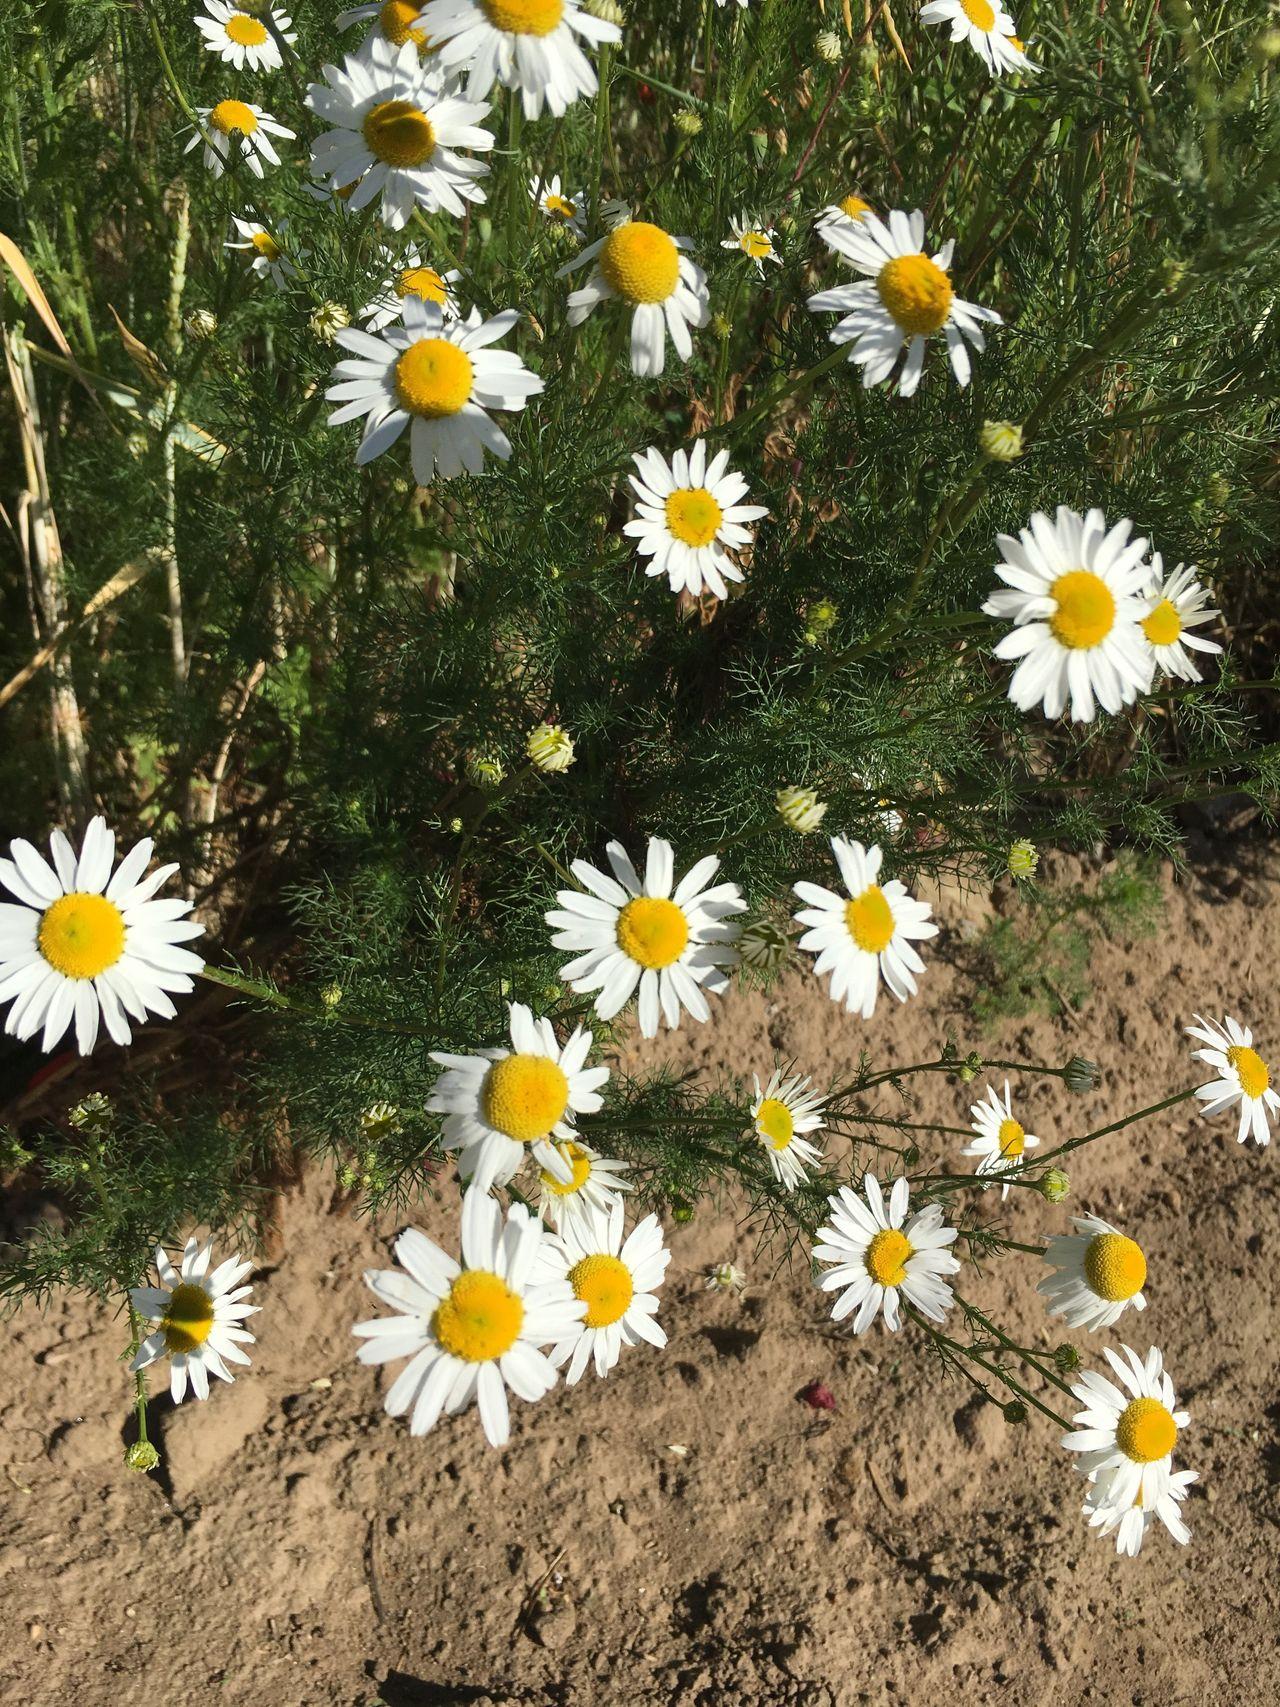 Flower Fragility Petal Freshness Flower Head Nature Growth Daisy Beauty In Nature High Angle View Field No People Blooming Day Outdoors Plant Yellow Close-up